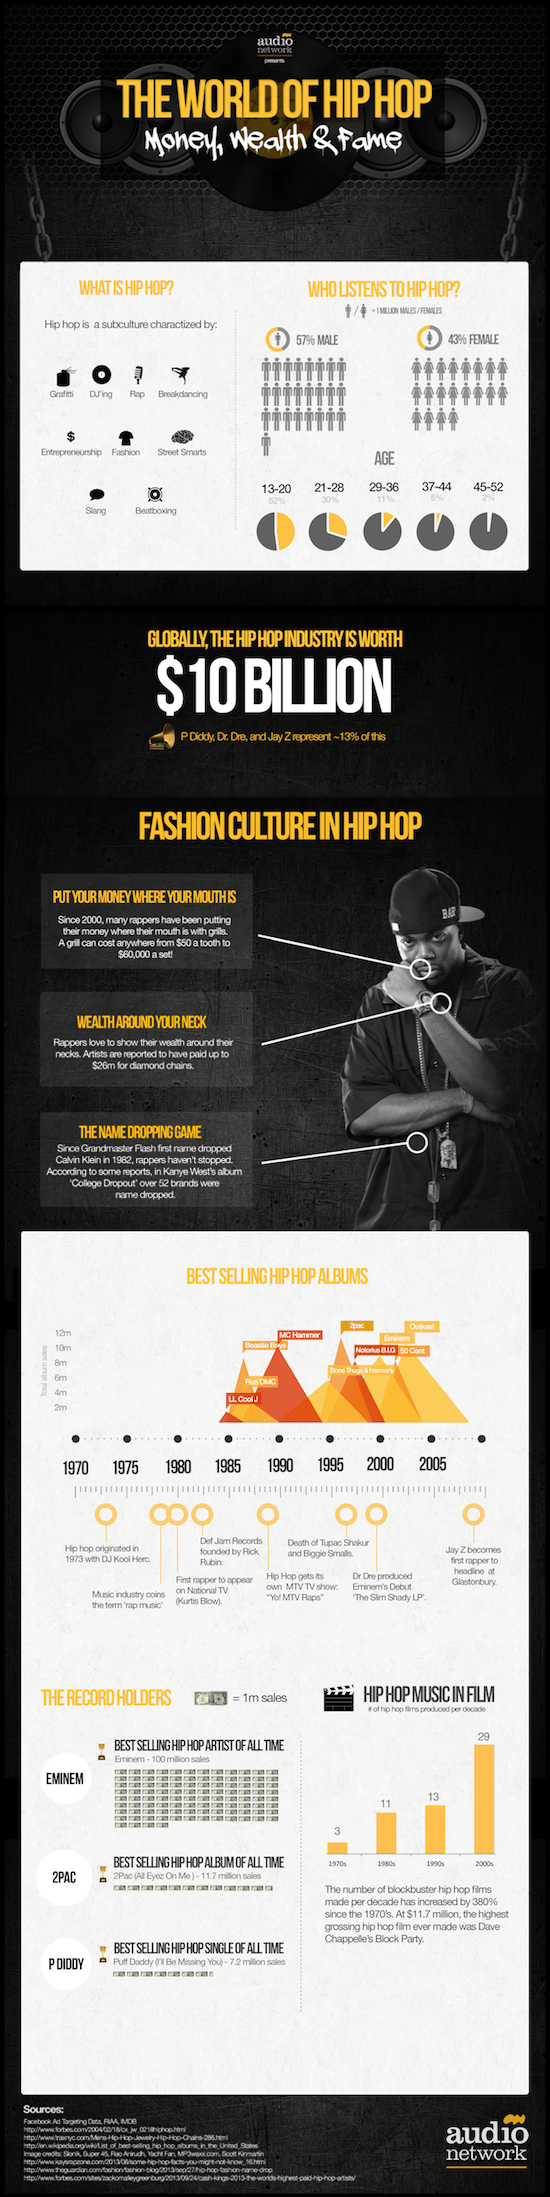 AudioNetwork_TheWorldofHipHop_HipHopandRnBCollection.png